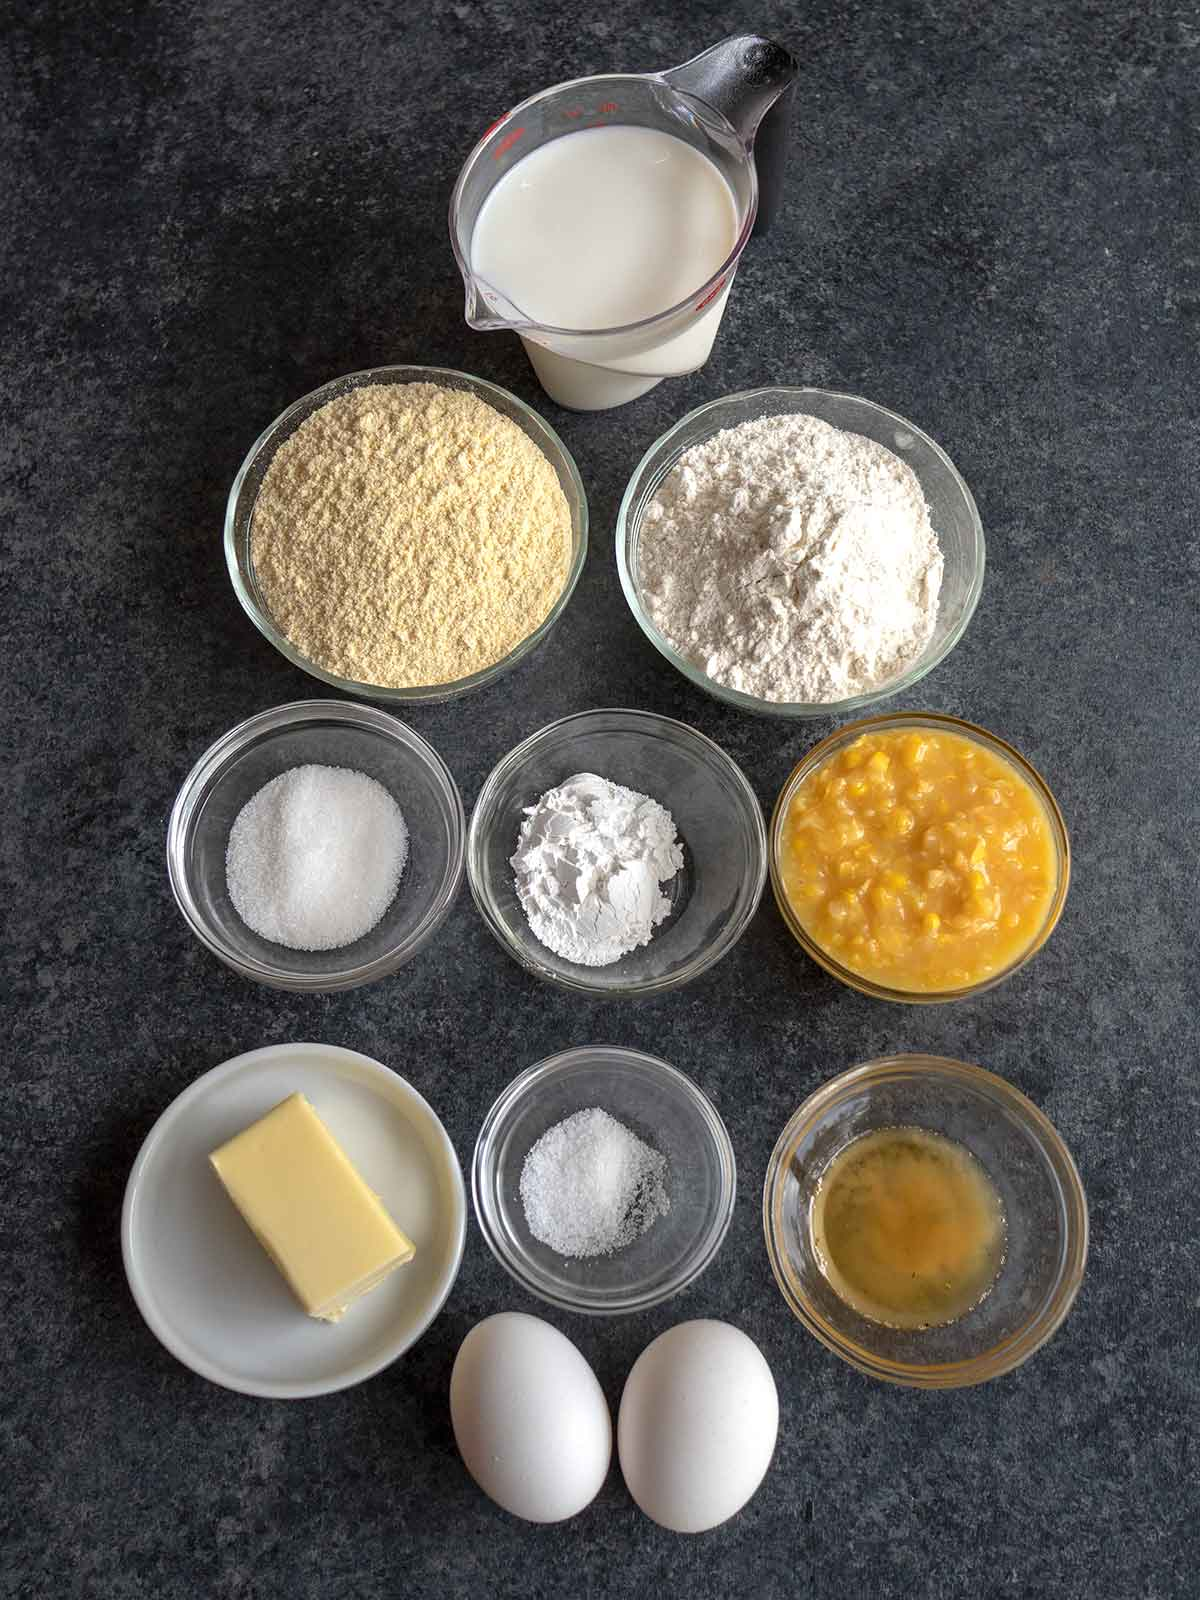 Ingredients for Louisiana Skillet Cornbread